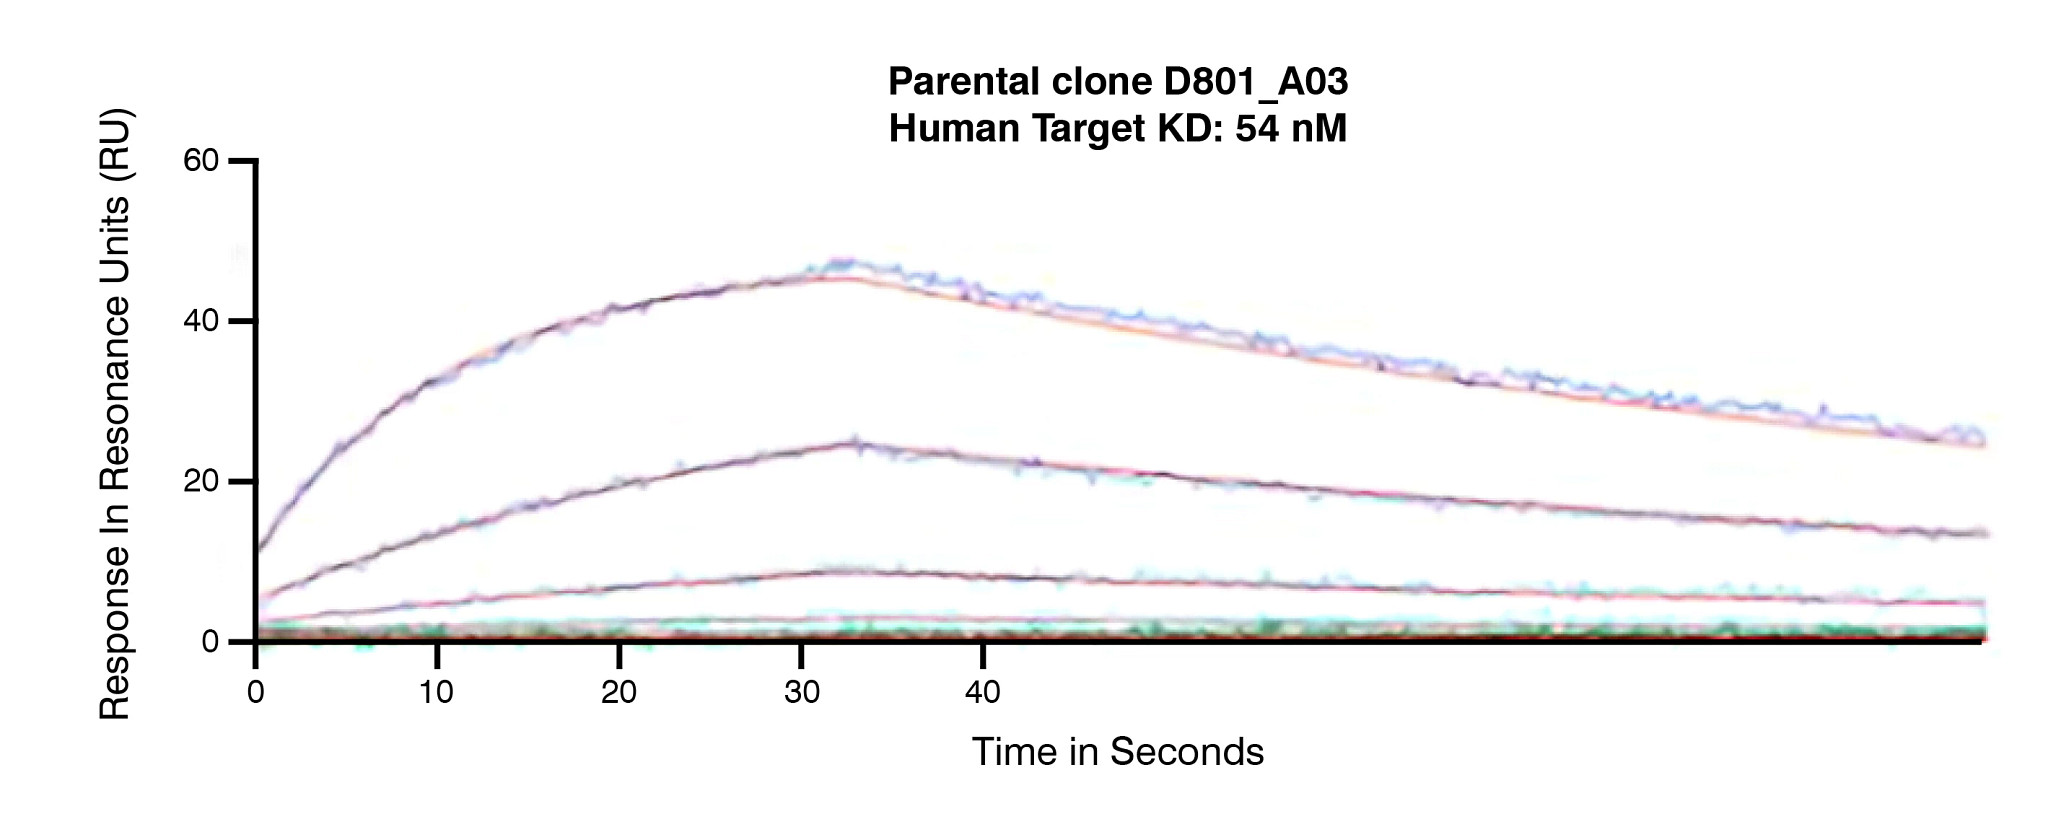 Tumbler antibody humanization produces a panel of leads and enables rapid antibody optimization with 10 times improvement in binding activity.